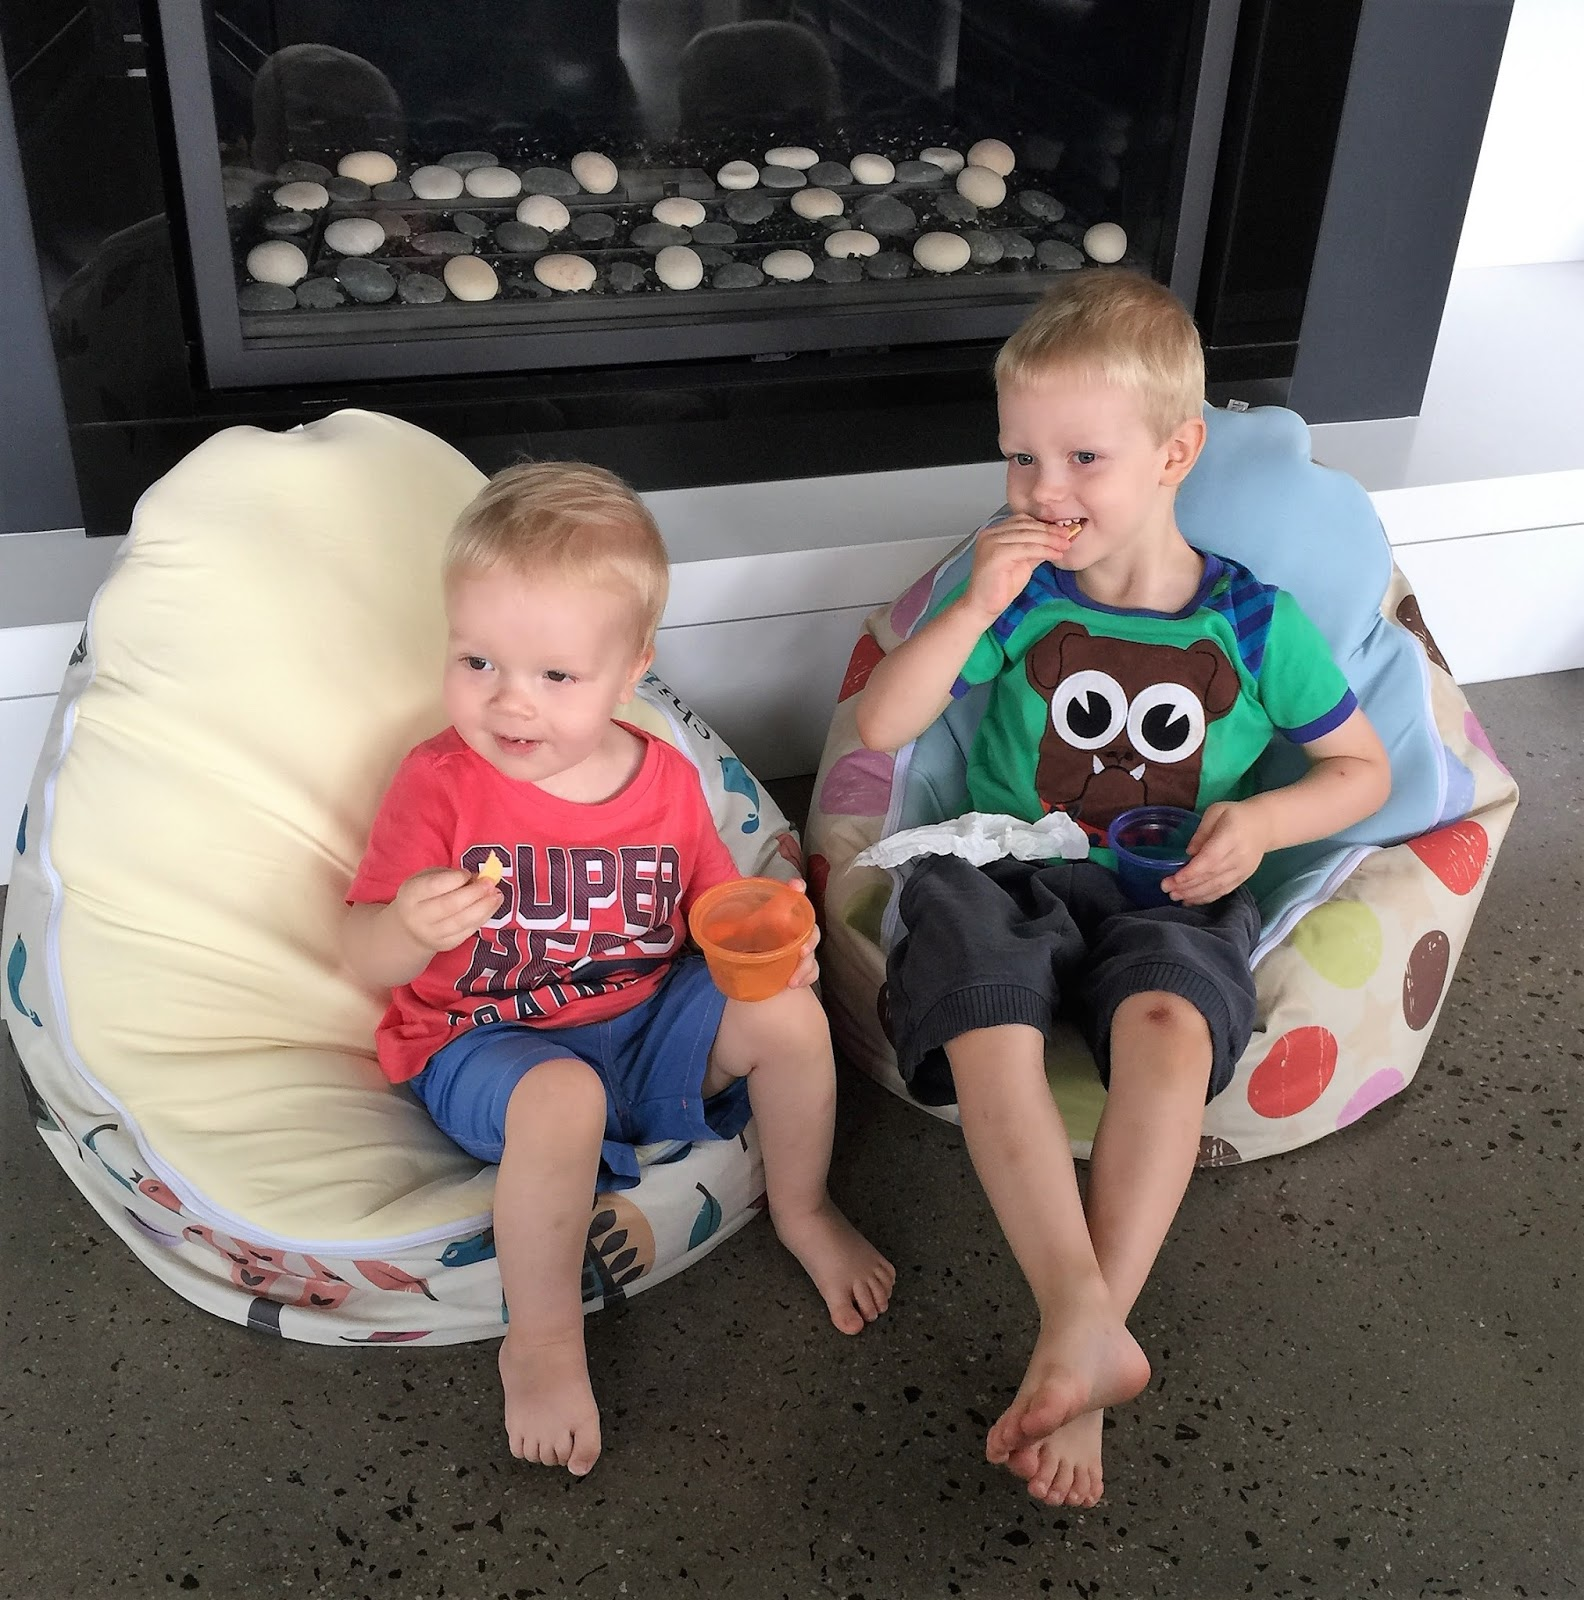 Swell Product Review Chibebe Snuggle Pod Baby And Toddler Bean Bralicious Painted Fabric Chair Ideas Braliciousco